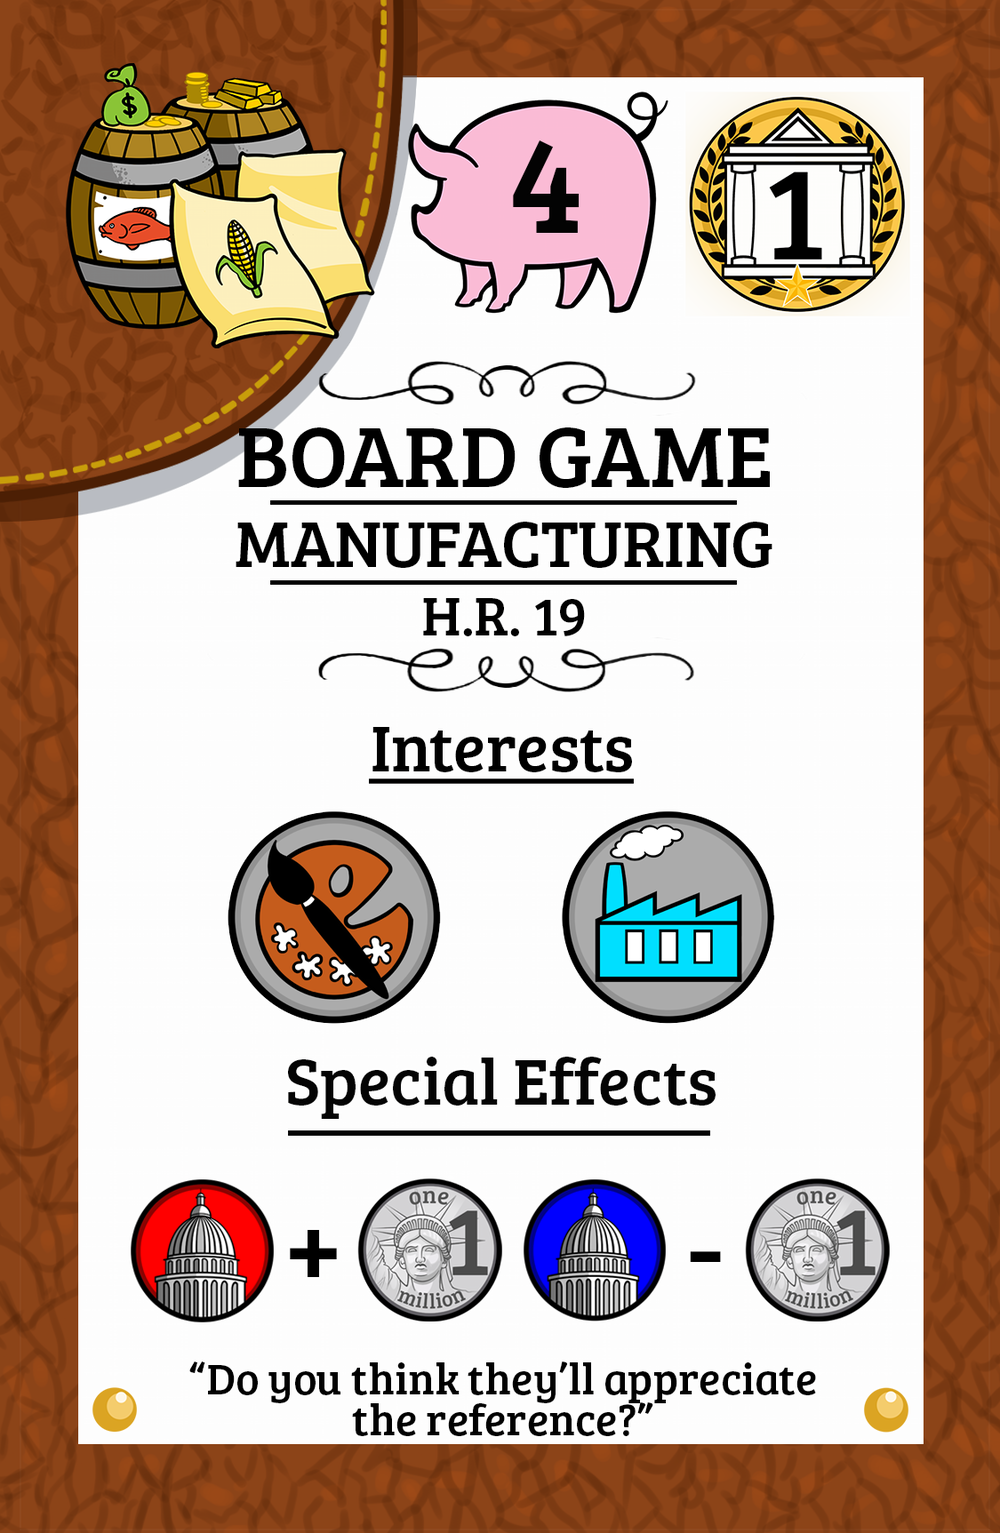 HR 19 - Board Game Manufacturing.png